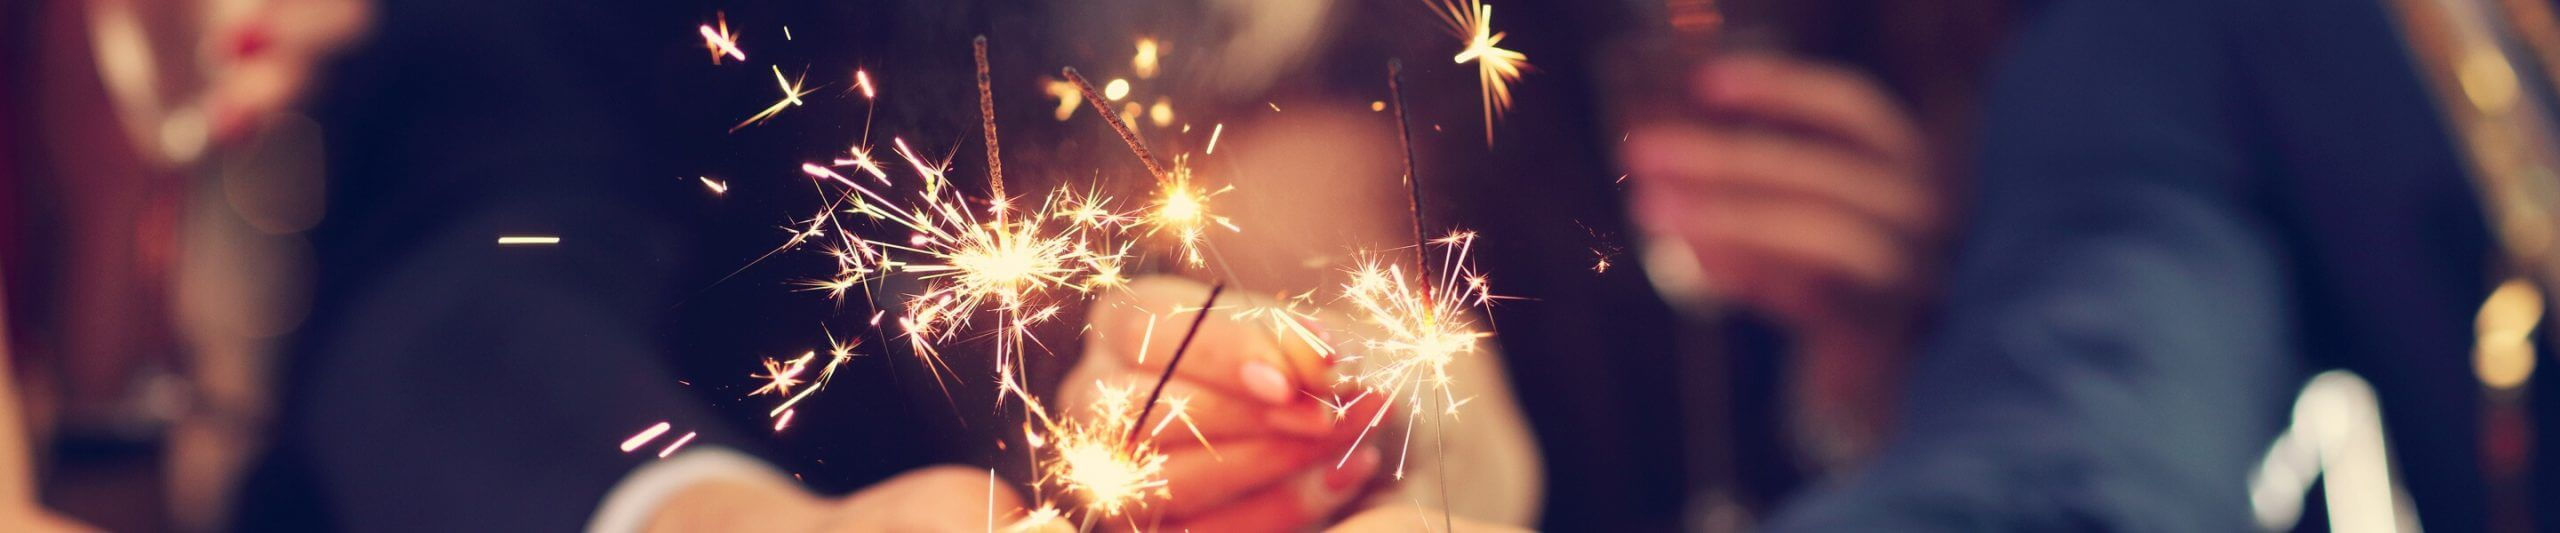 sparklers close up